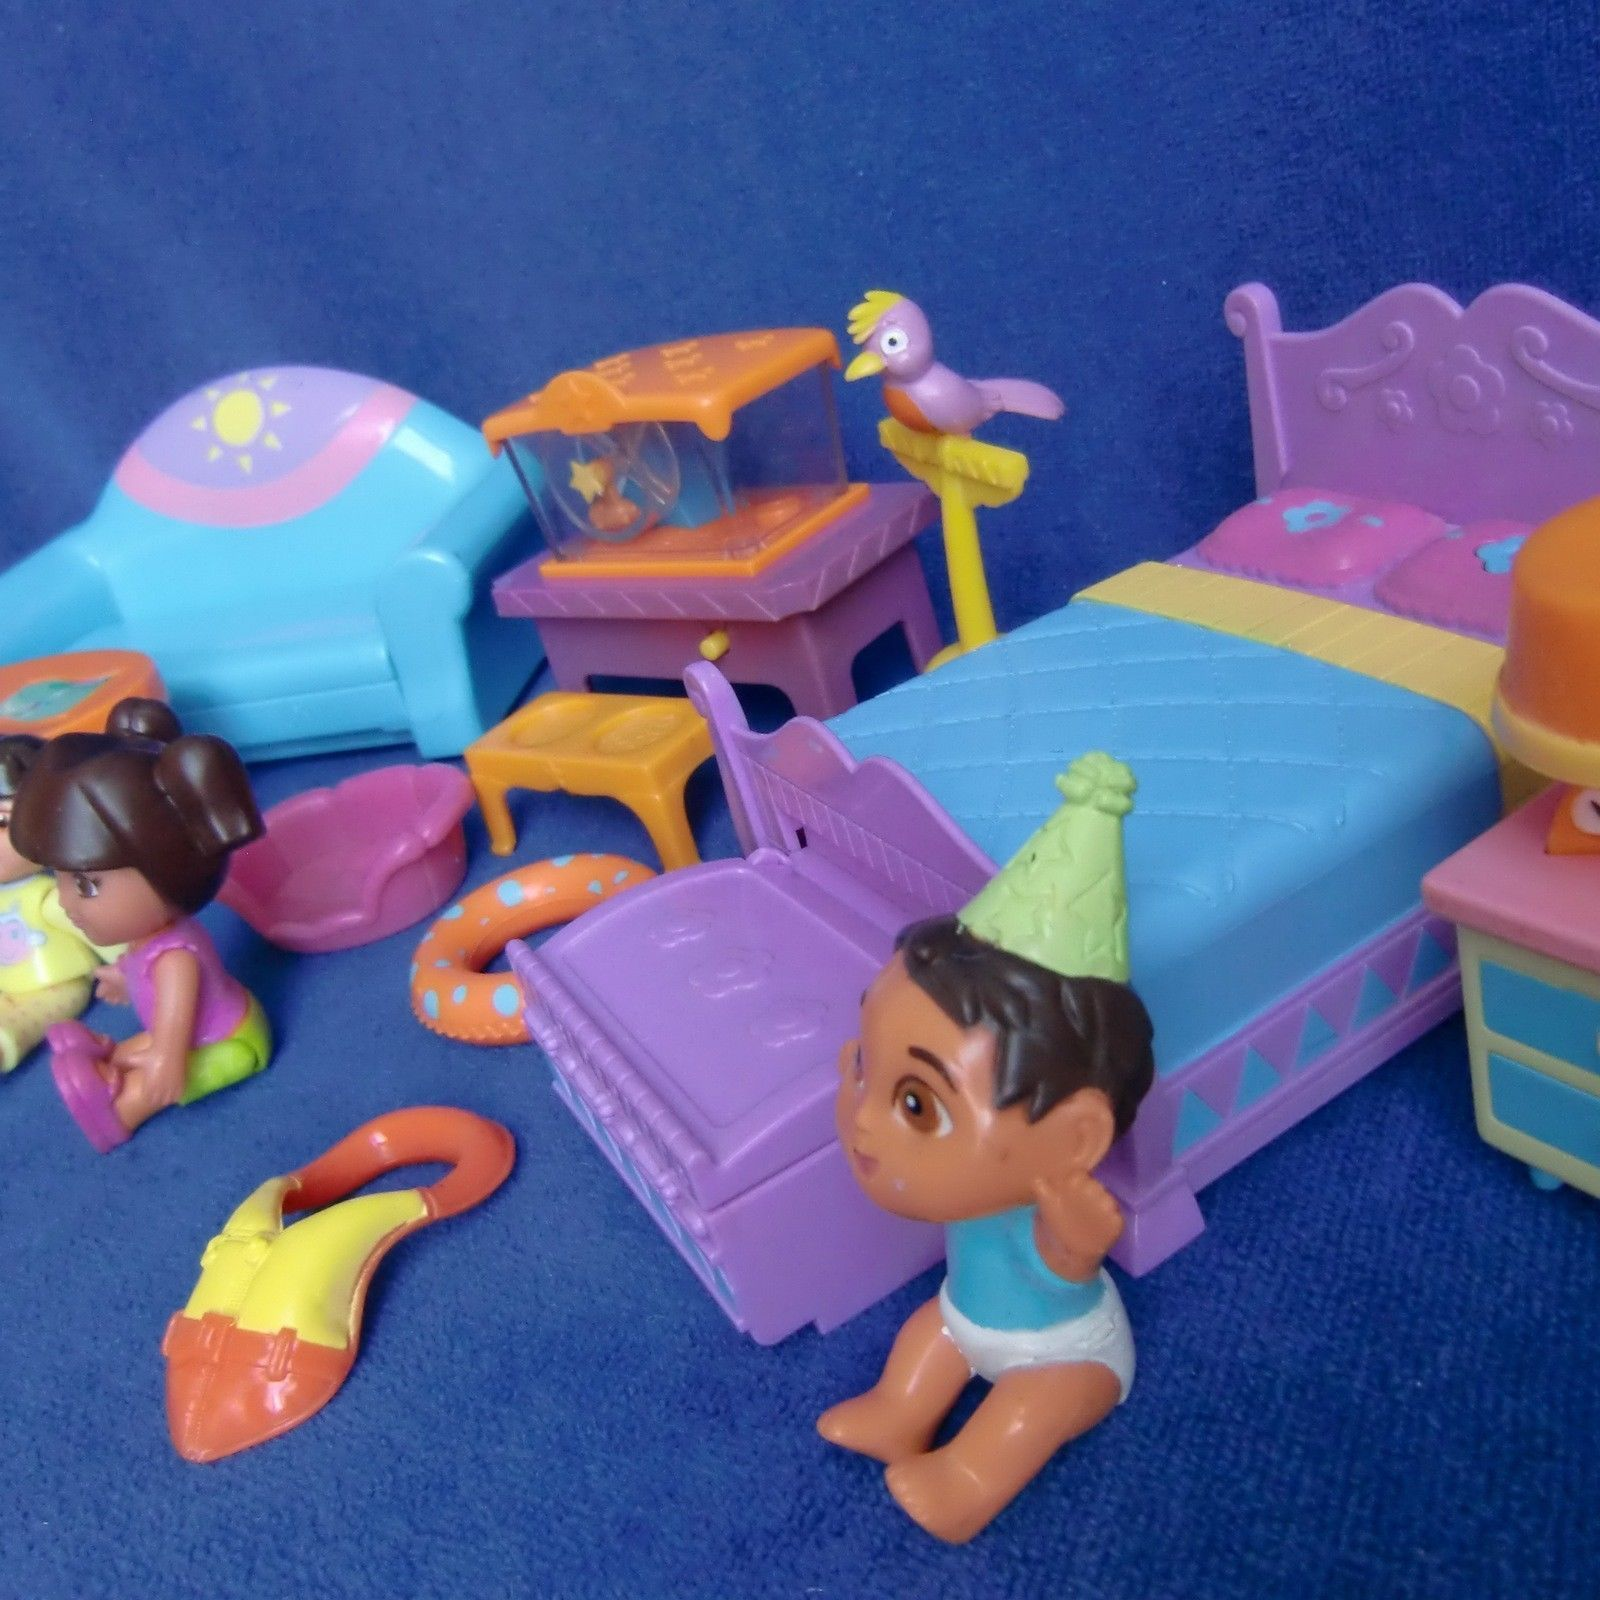 Dora Dollhouse 10+ Furniture Doll OK Sofa Bed Table Hamster Bird Baby  Explorer | EBay